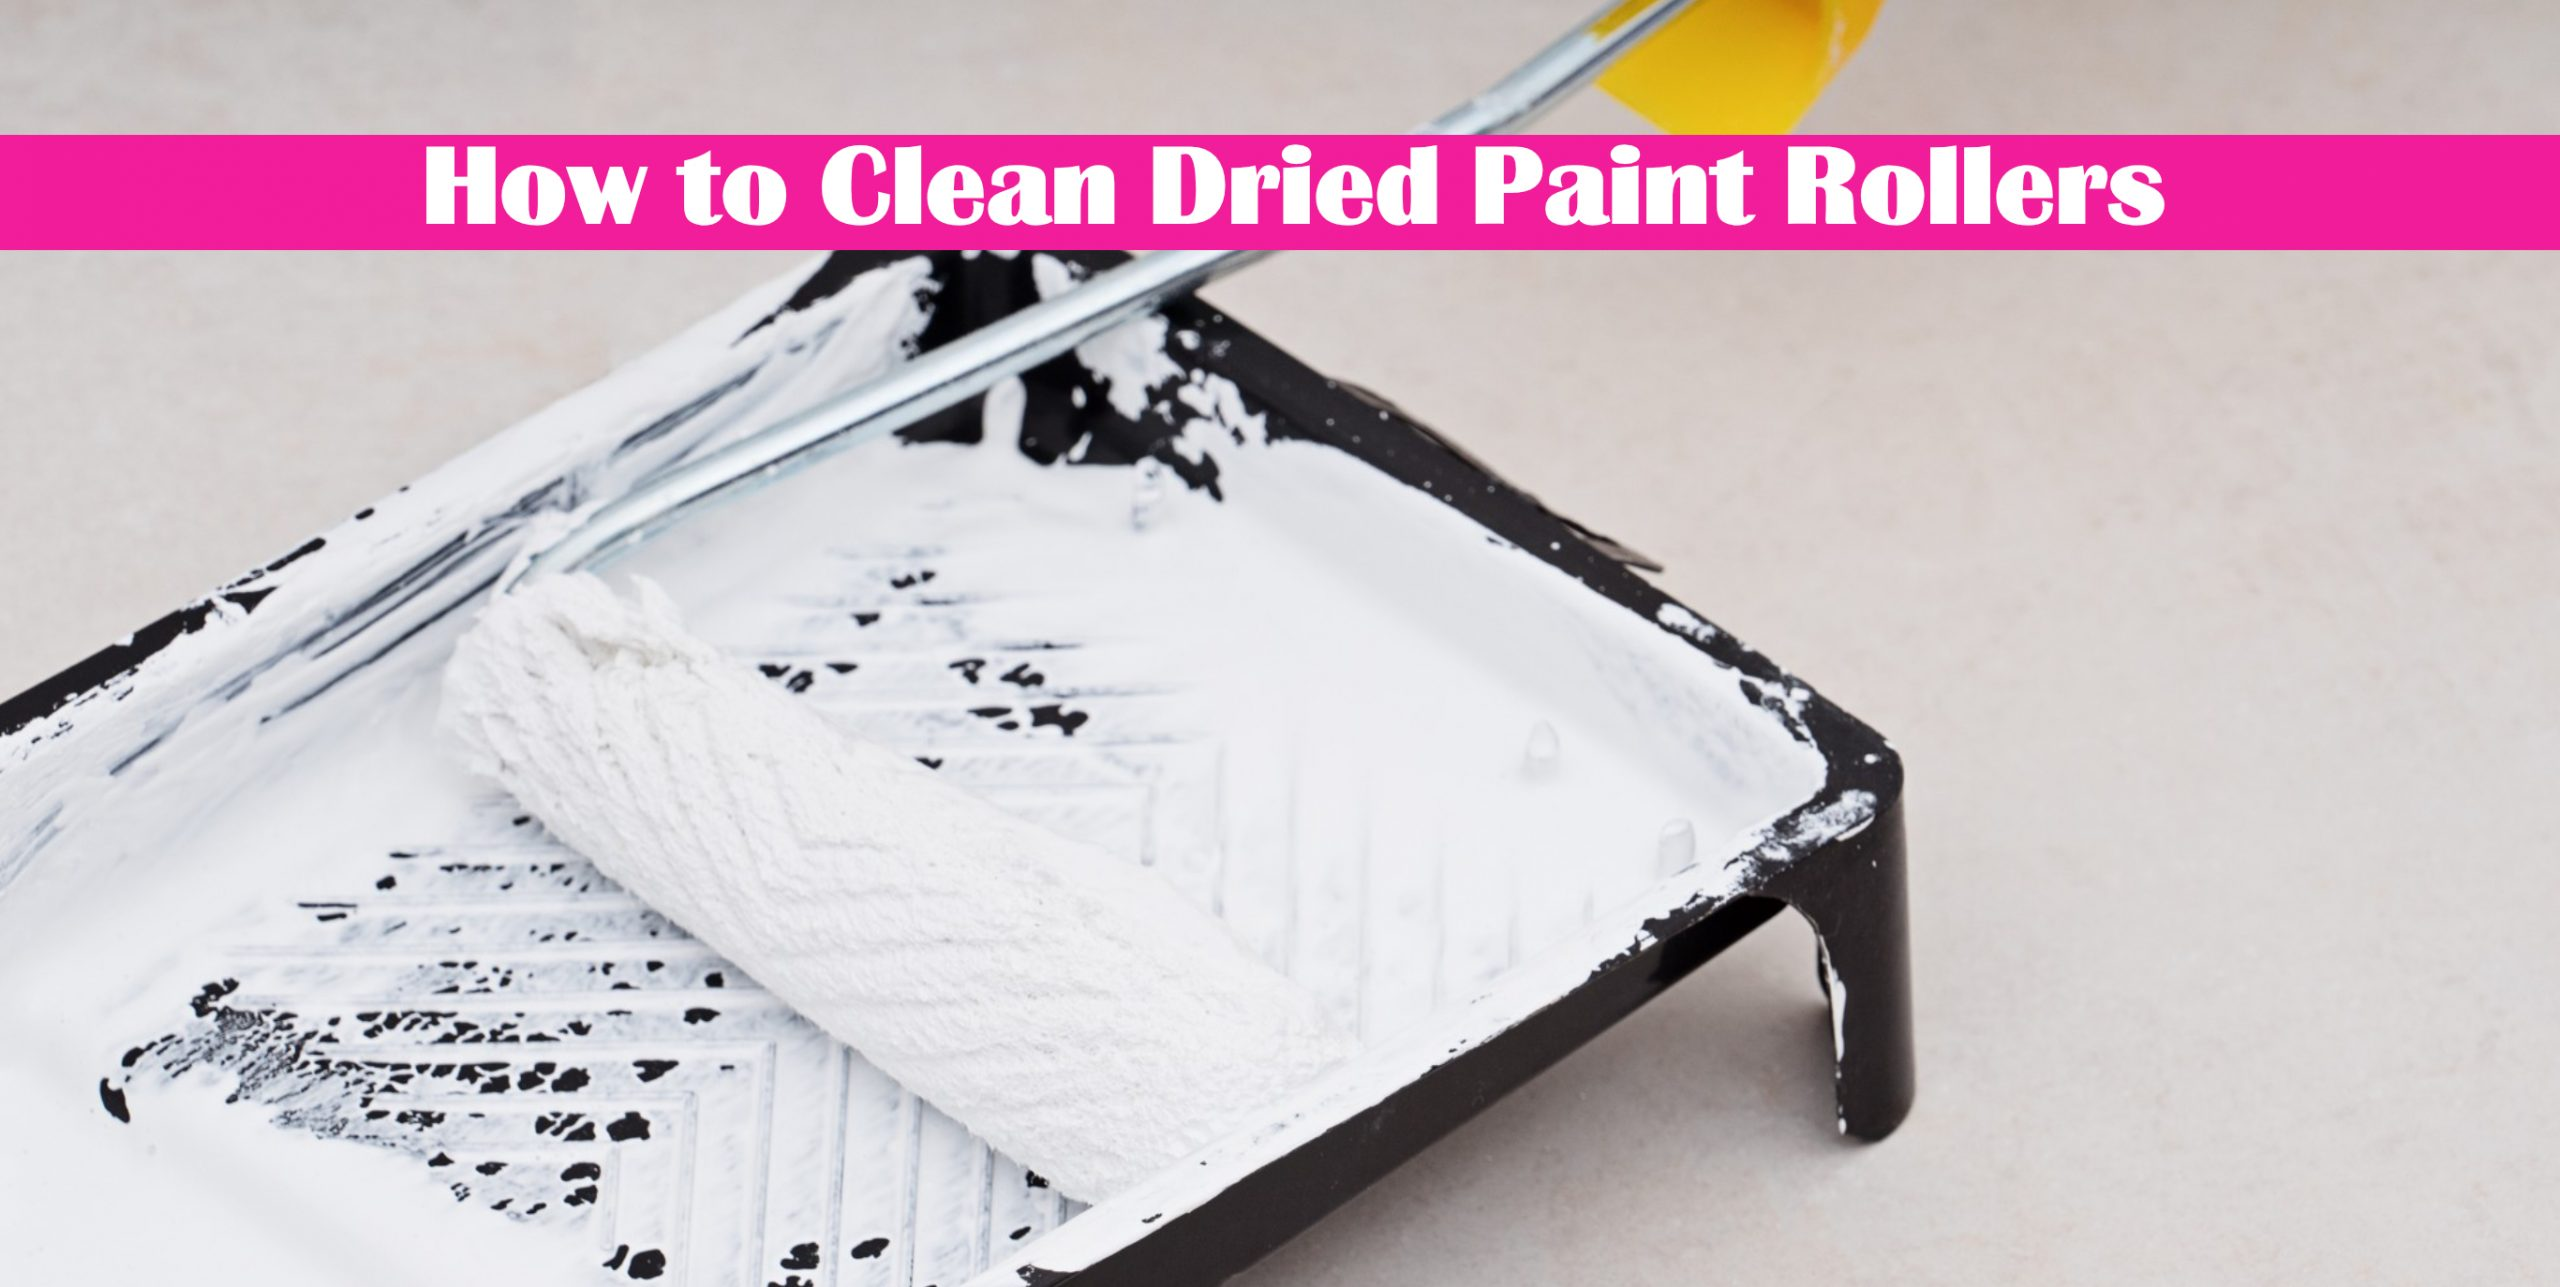 How to Clean Dried Paint Rollers: Make Them Look Like New